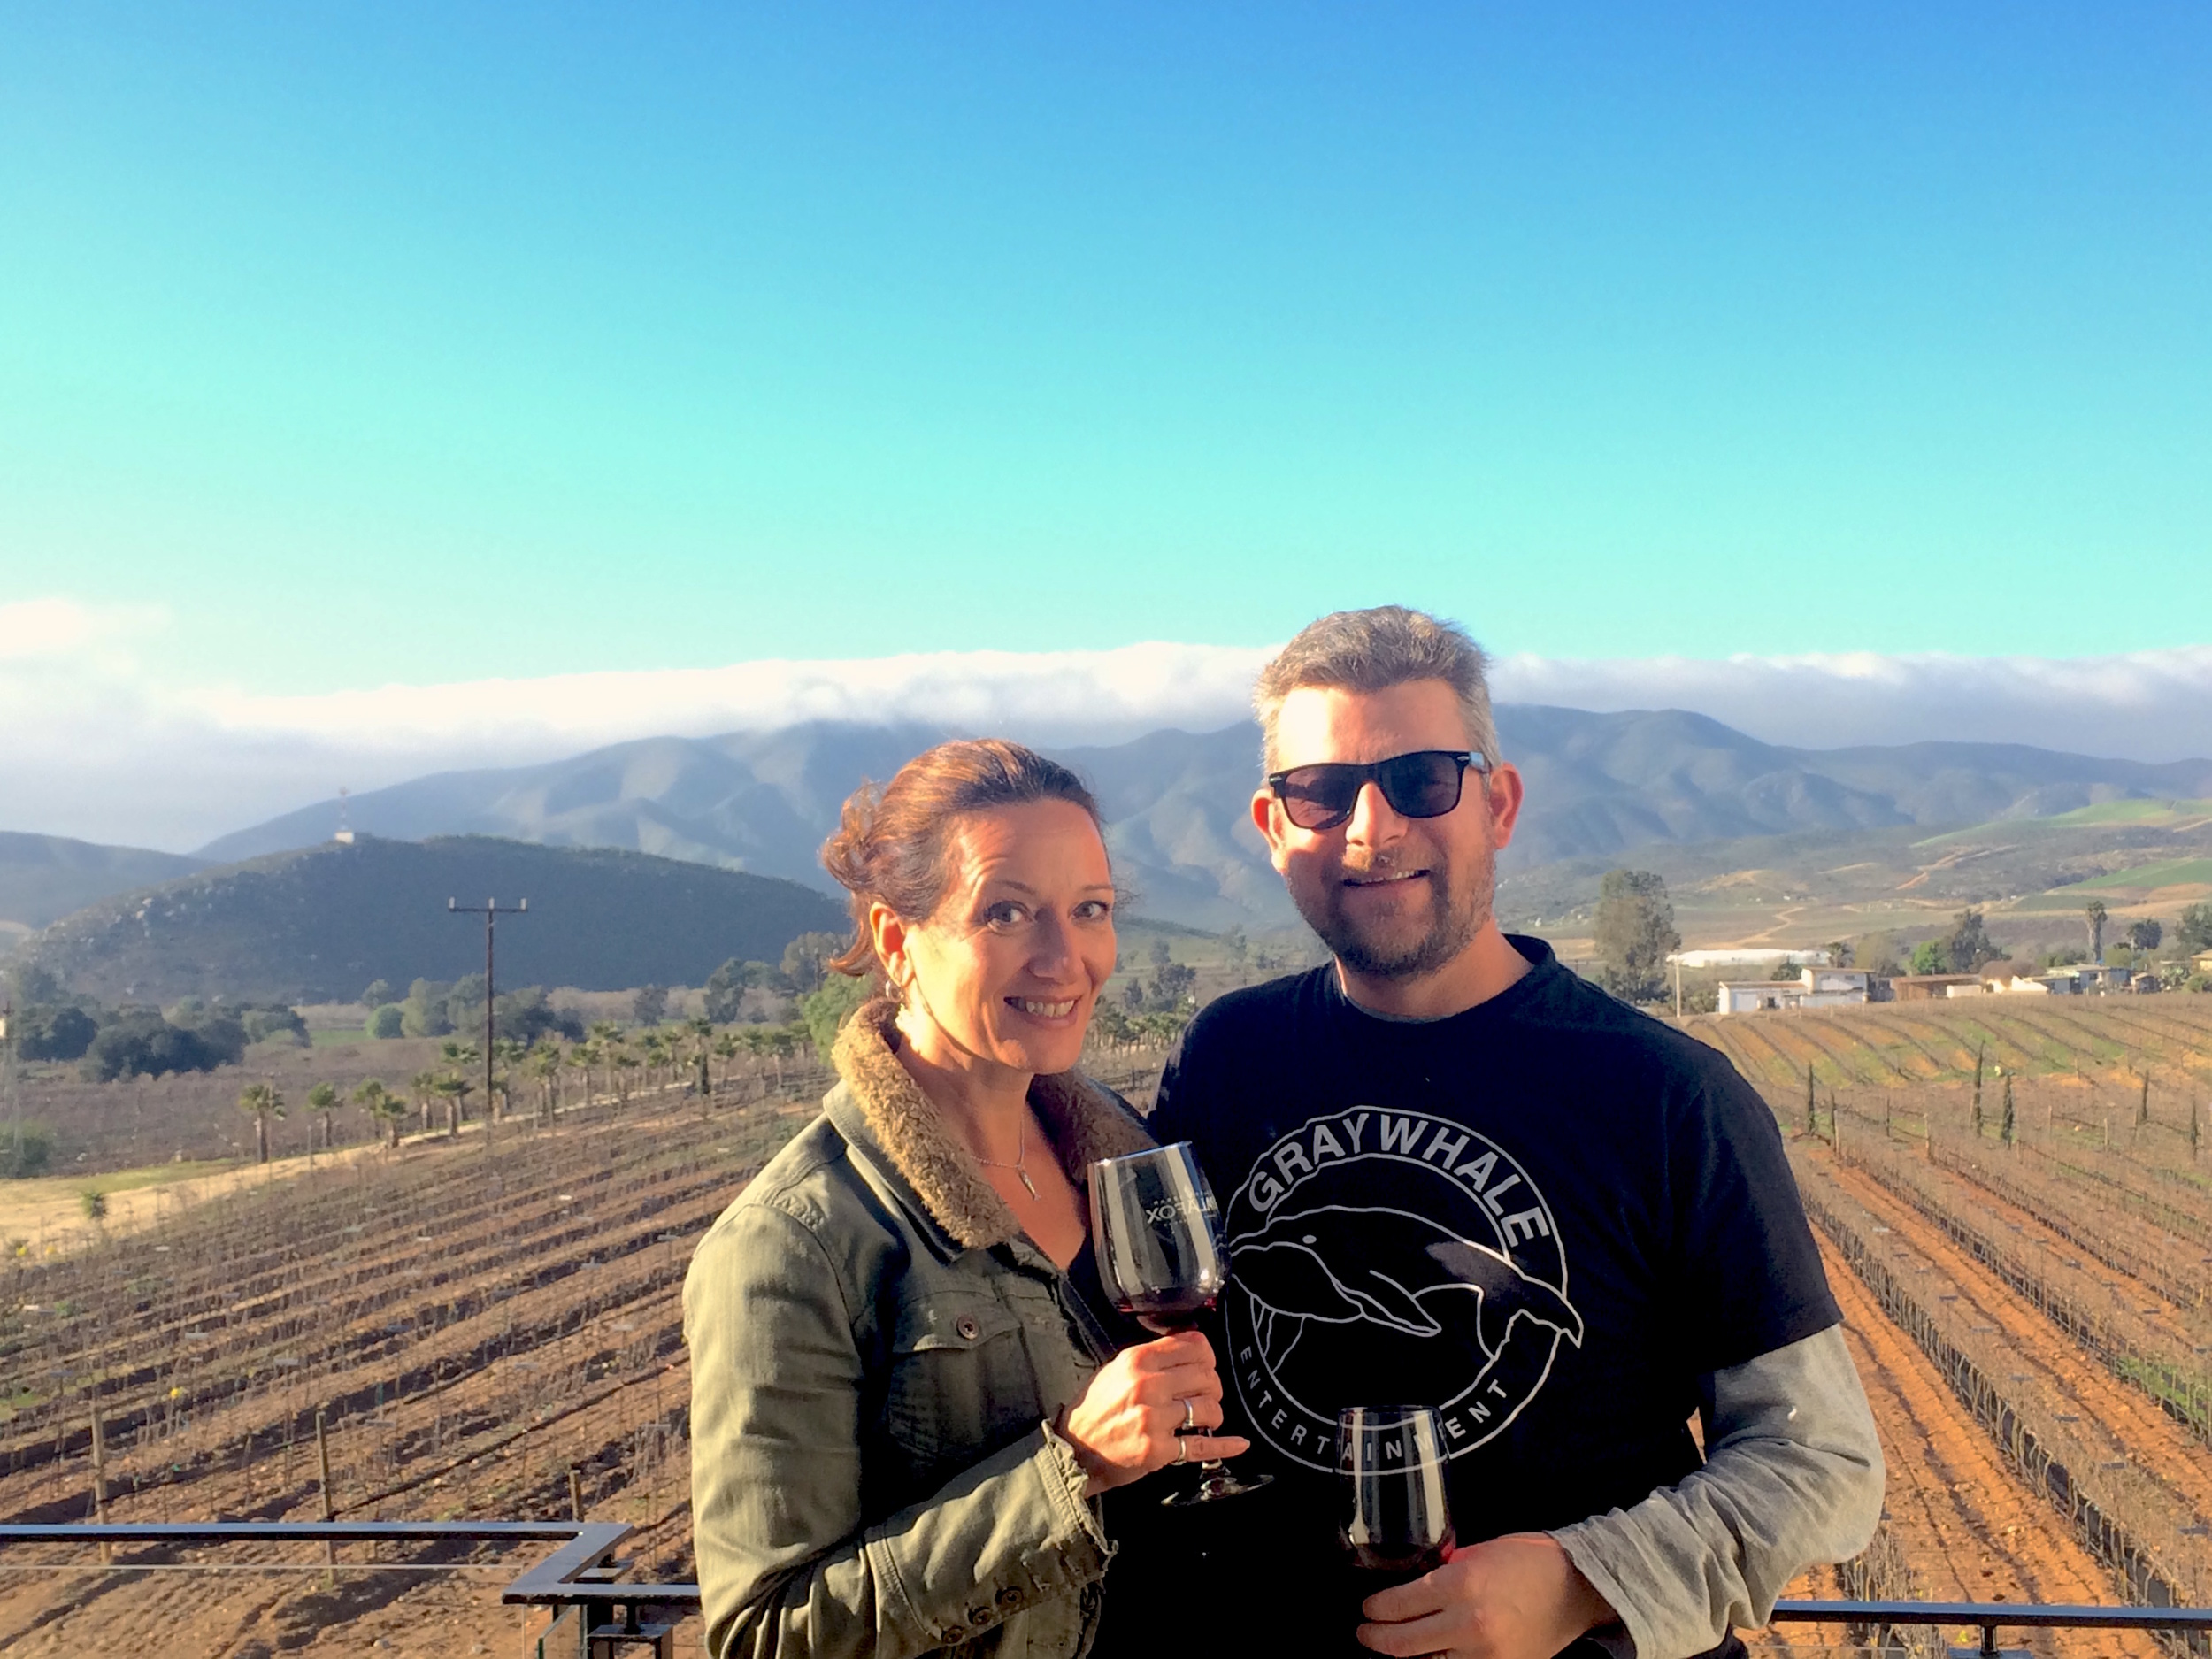 Marianna and her husband Todd enjoying the wine and expansive views from Palafox winery.